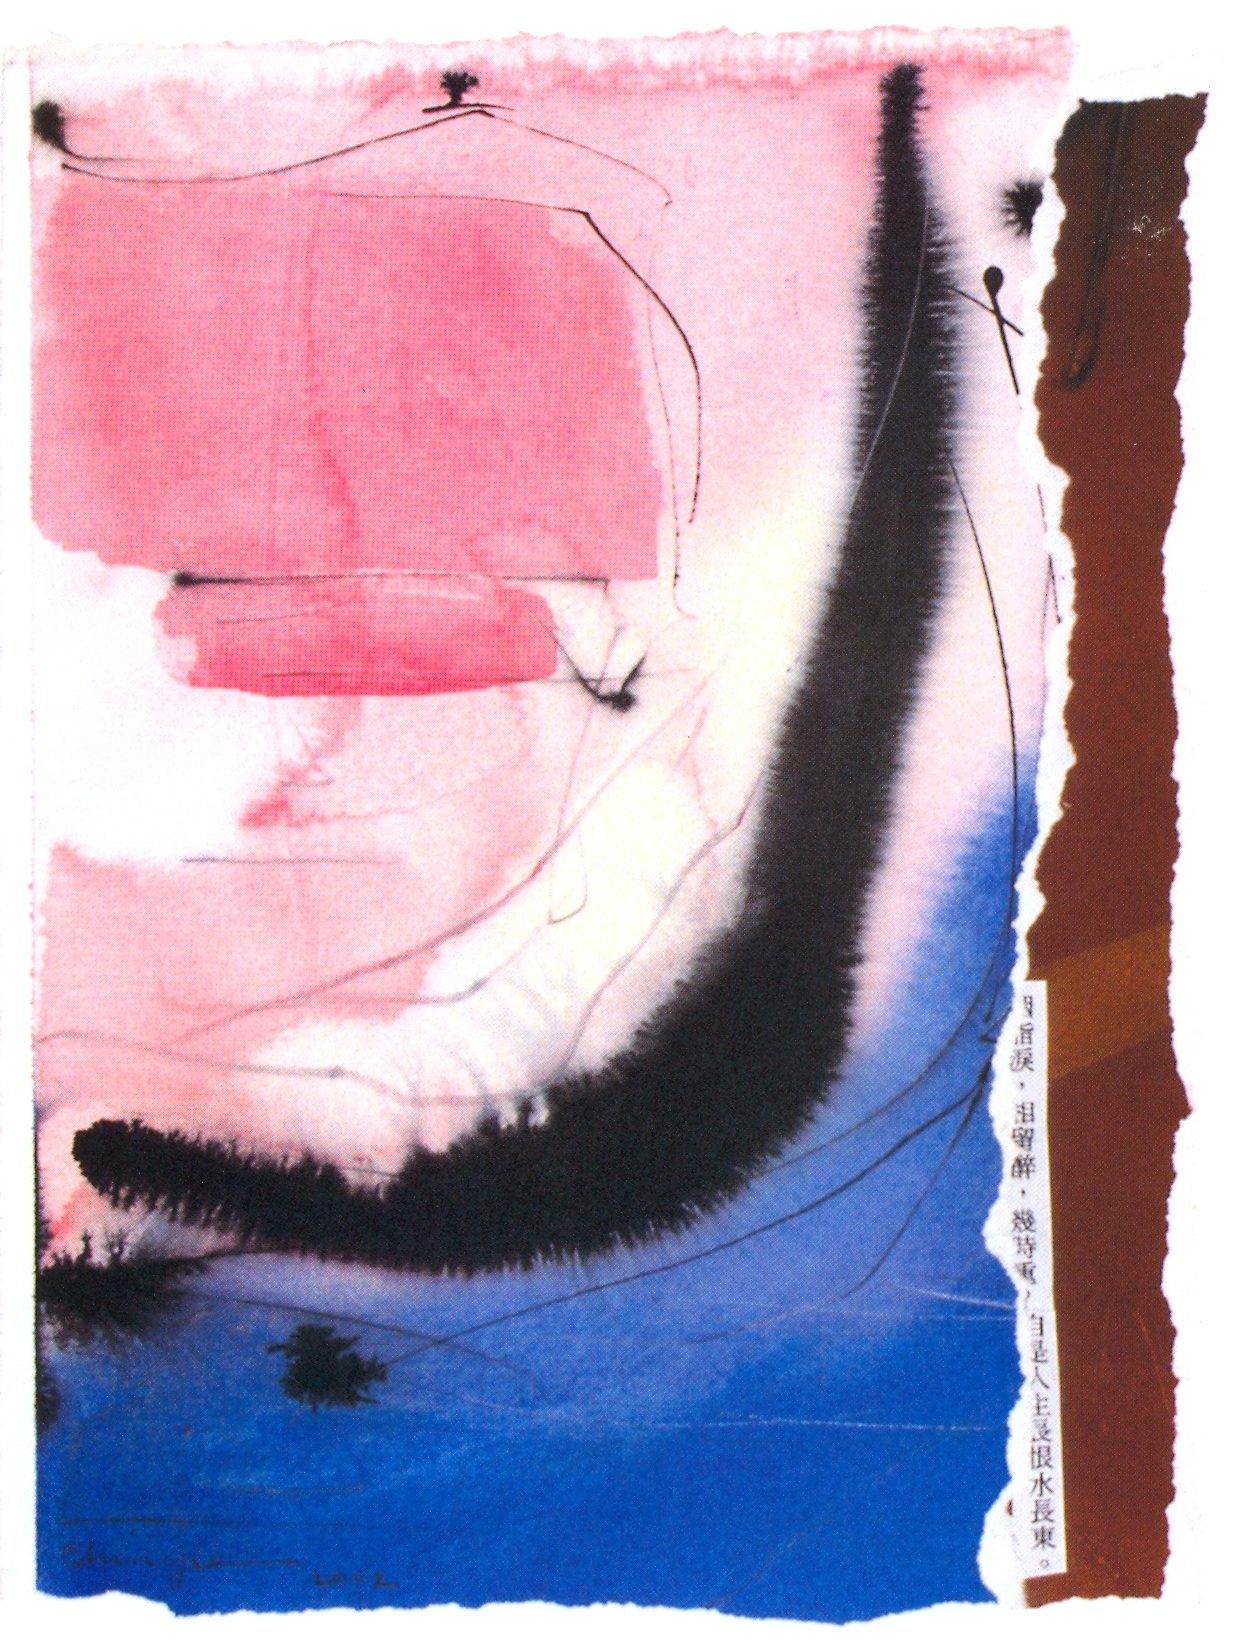 """Chinyee,   Rephrasing #302/02,   2002, Watercolor, Paper on Board, 14"""" x 11"""""""